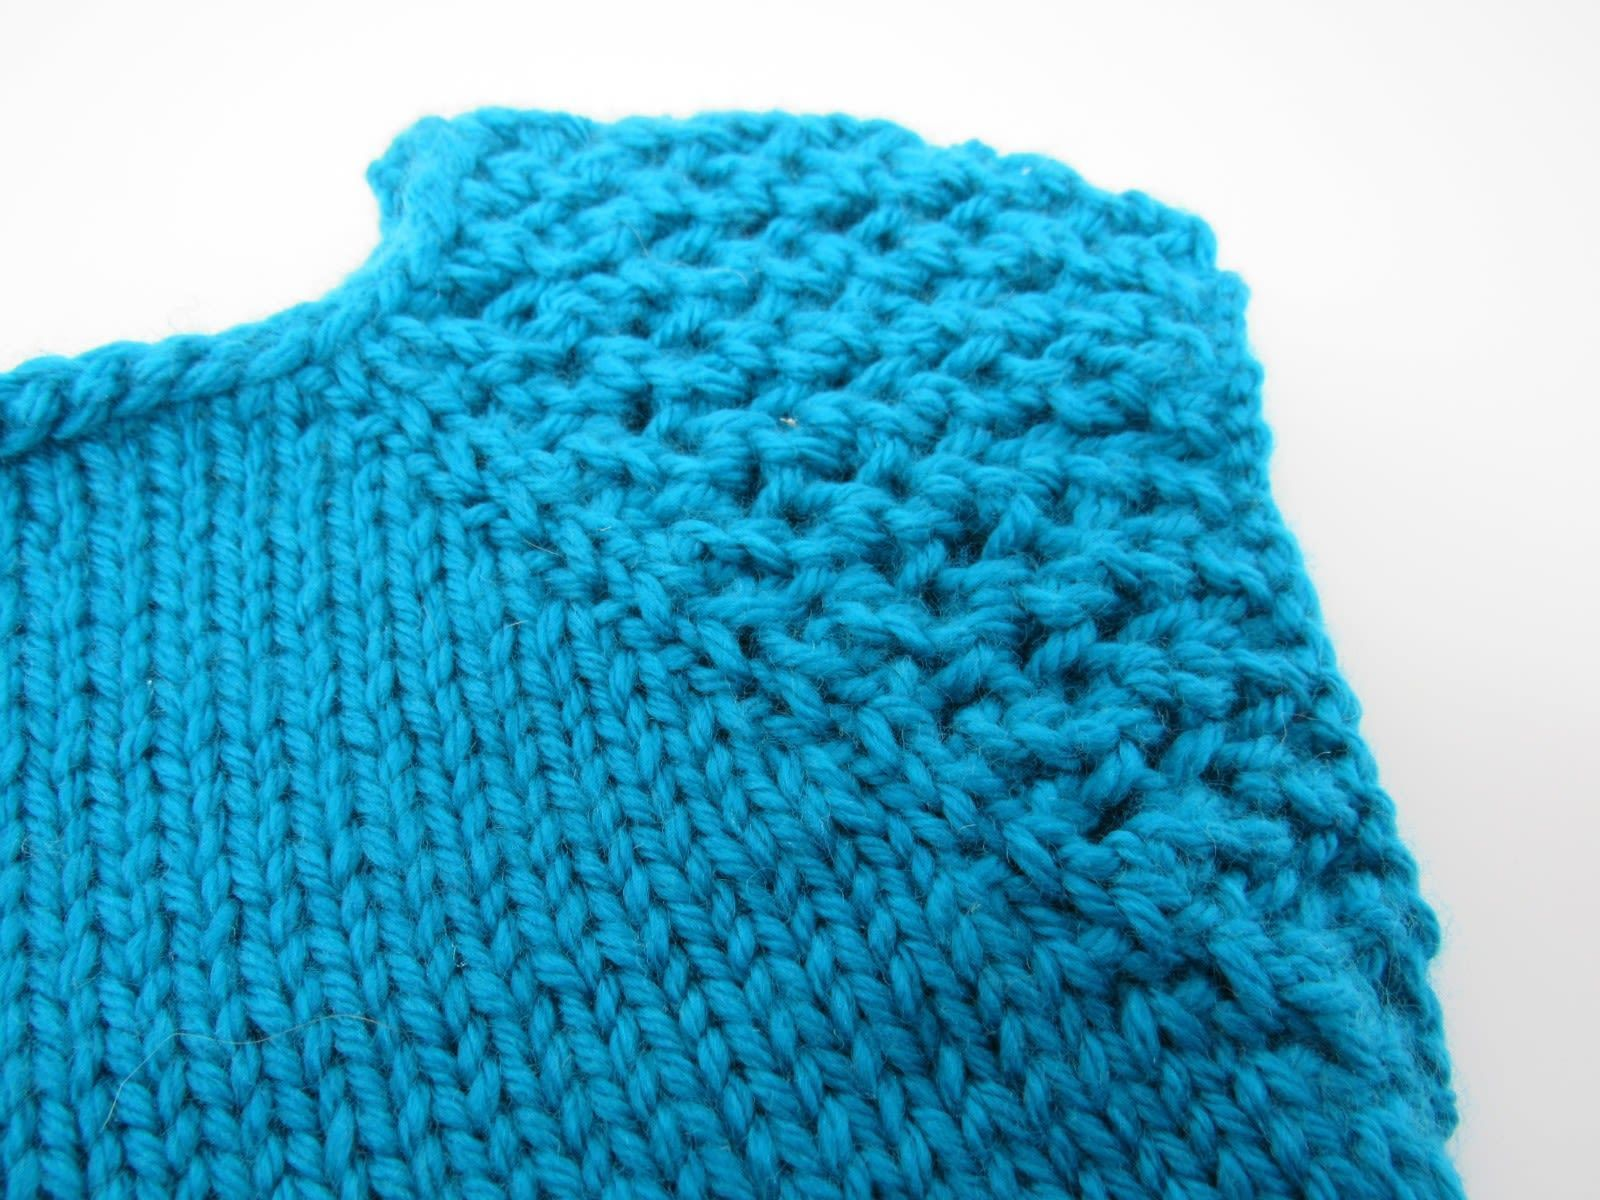 Handcrafted Knitted Sweater Teal Textured Lace Female Kids 6-8